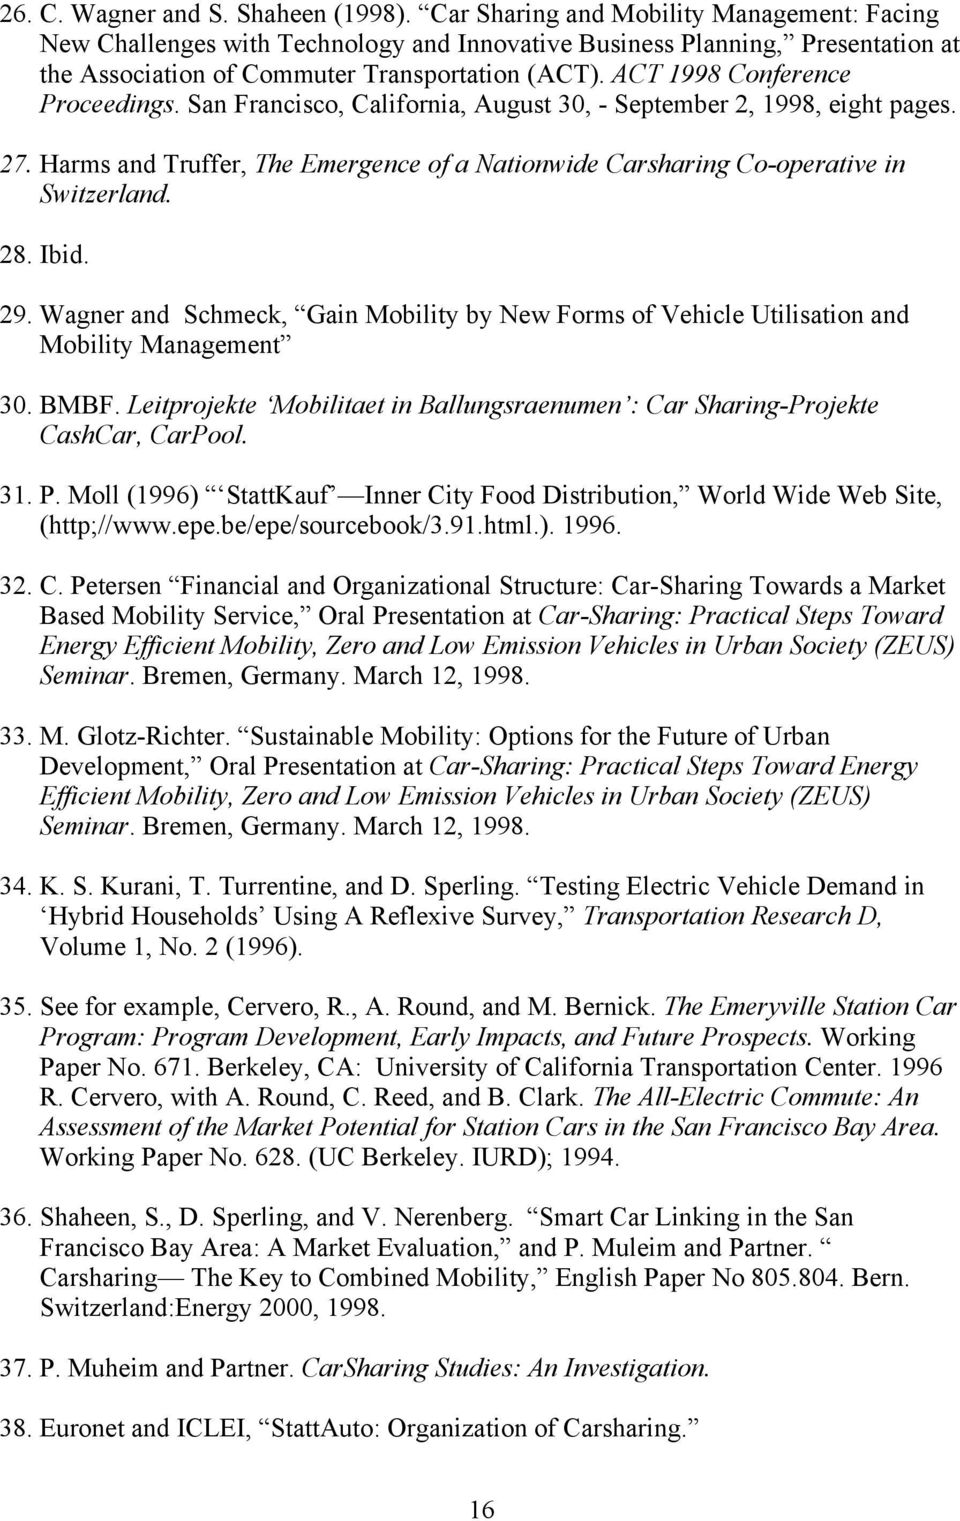 ACT 1998 Conference Proceedings. San Francisco, California, August 30, - September 2, 1998, eight pages. 27. Harms and Truffer, The Emergence of a Nationwide Carsharing Co-operative in Switzerland.